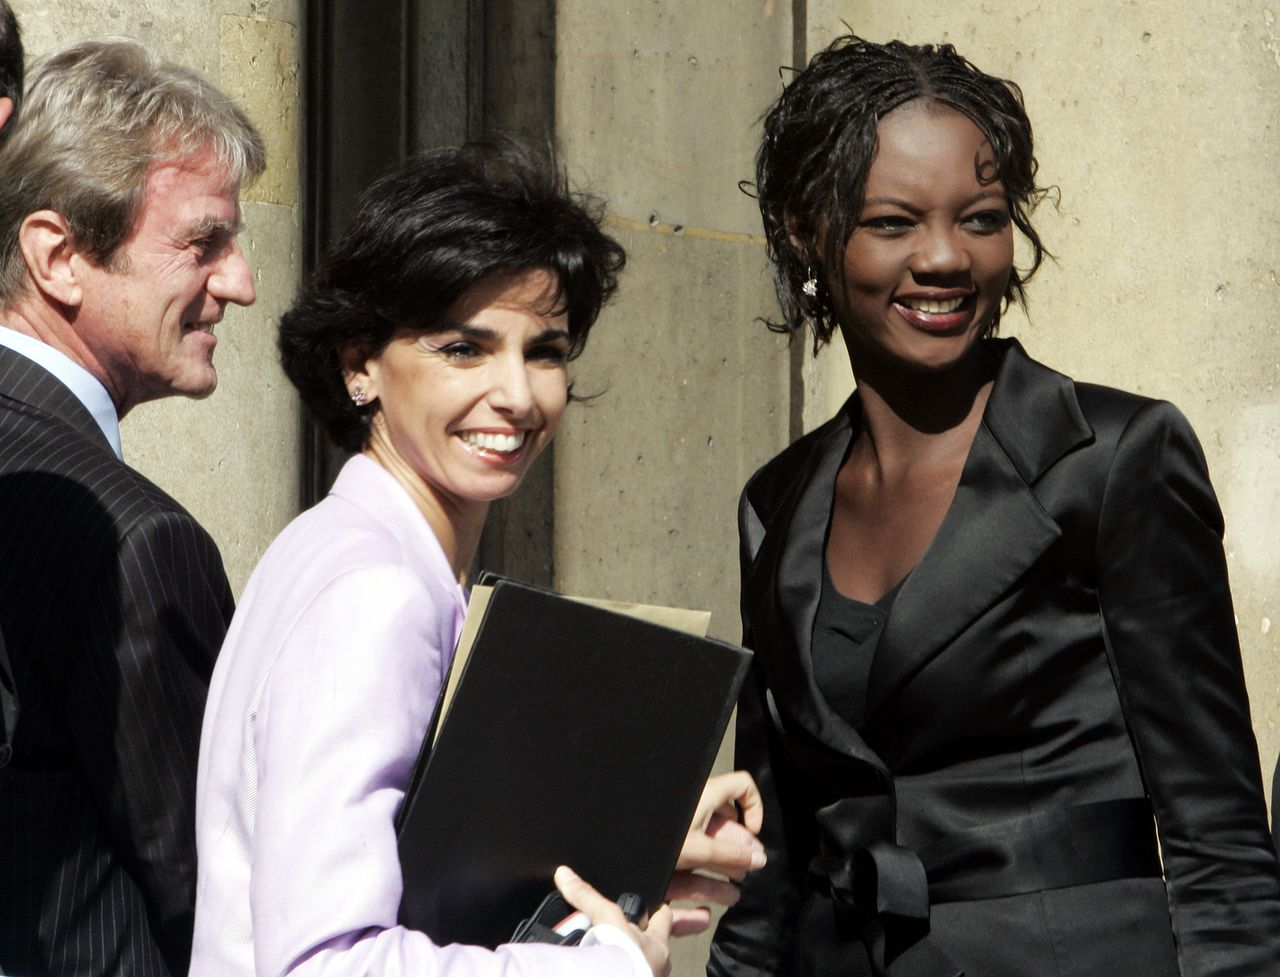 Staatssecretaris Rade Yade (rechts) vanochtend op het Elysée met Bernard Kouchner, minister van Buitenlandse Zaken en minister Dati van Justitie. Foto AP Newly named junior minister for Human Rights Senegalese-born Rama Yade, right, Justice Minister Rachida Dati, center, and Foreign Minister Bernard Kouchner arrive for the weekly cabinet meeting at the Elysee Palace in Paris, Wednesday, June 20, 2007 following a cabinet reshuffle. President Nicolas Sarkozy sent a strong signal to France's disaffected minorities by appointing an outspoken advocate of Muslim women and a woman of Senegalese origin to his government, among France's most diverse ever. (AP Photo/Michel Euler)